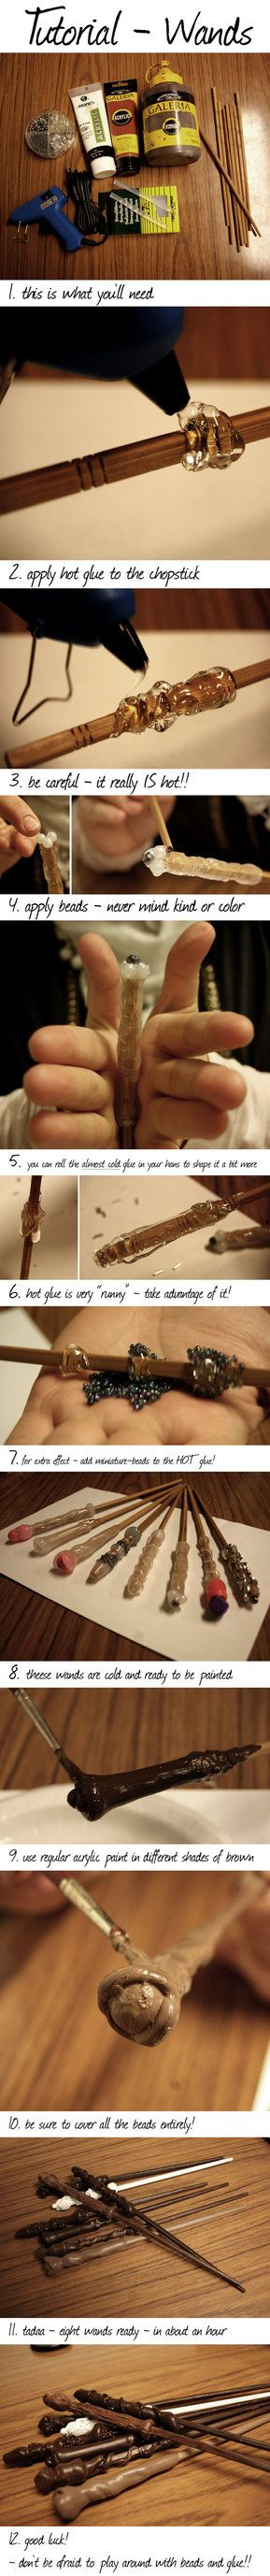 Harry Potter party -wizard wands - tutorial by *majann on deviantART